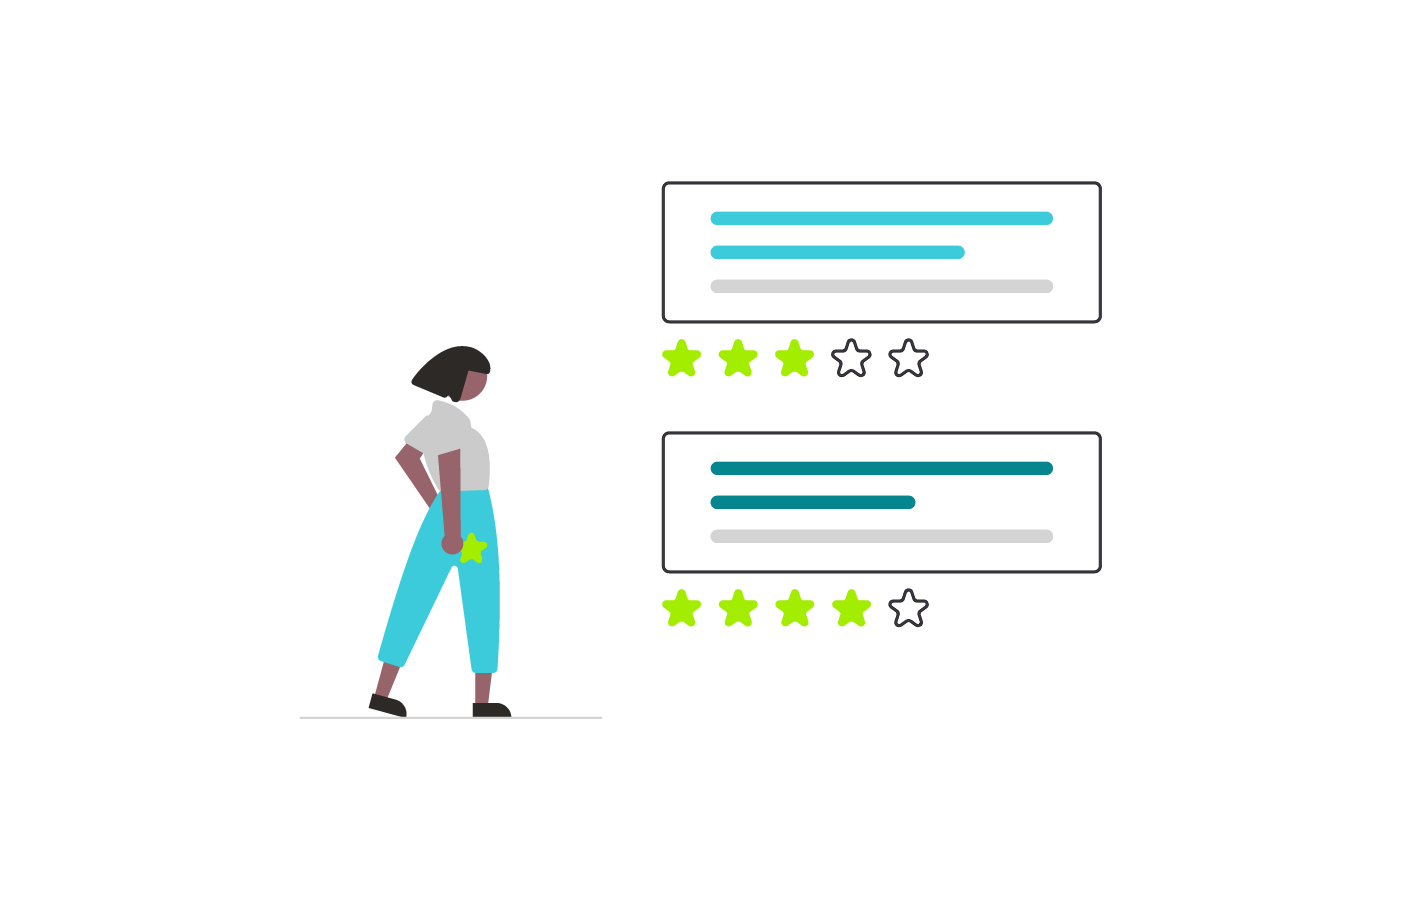 User-friendly UI boosts customer experience in your digital product